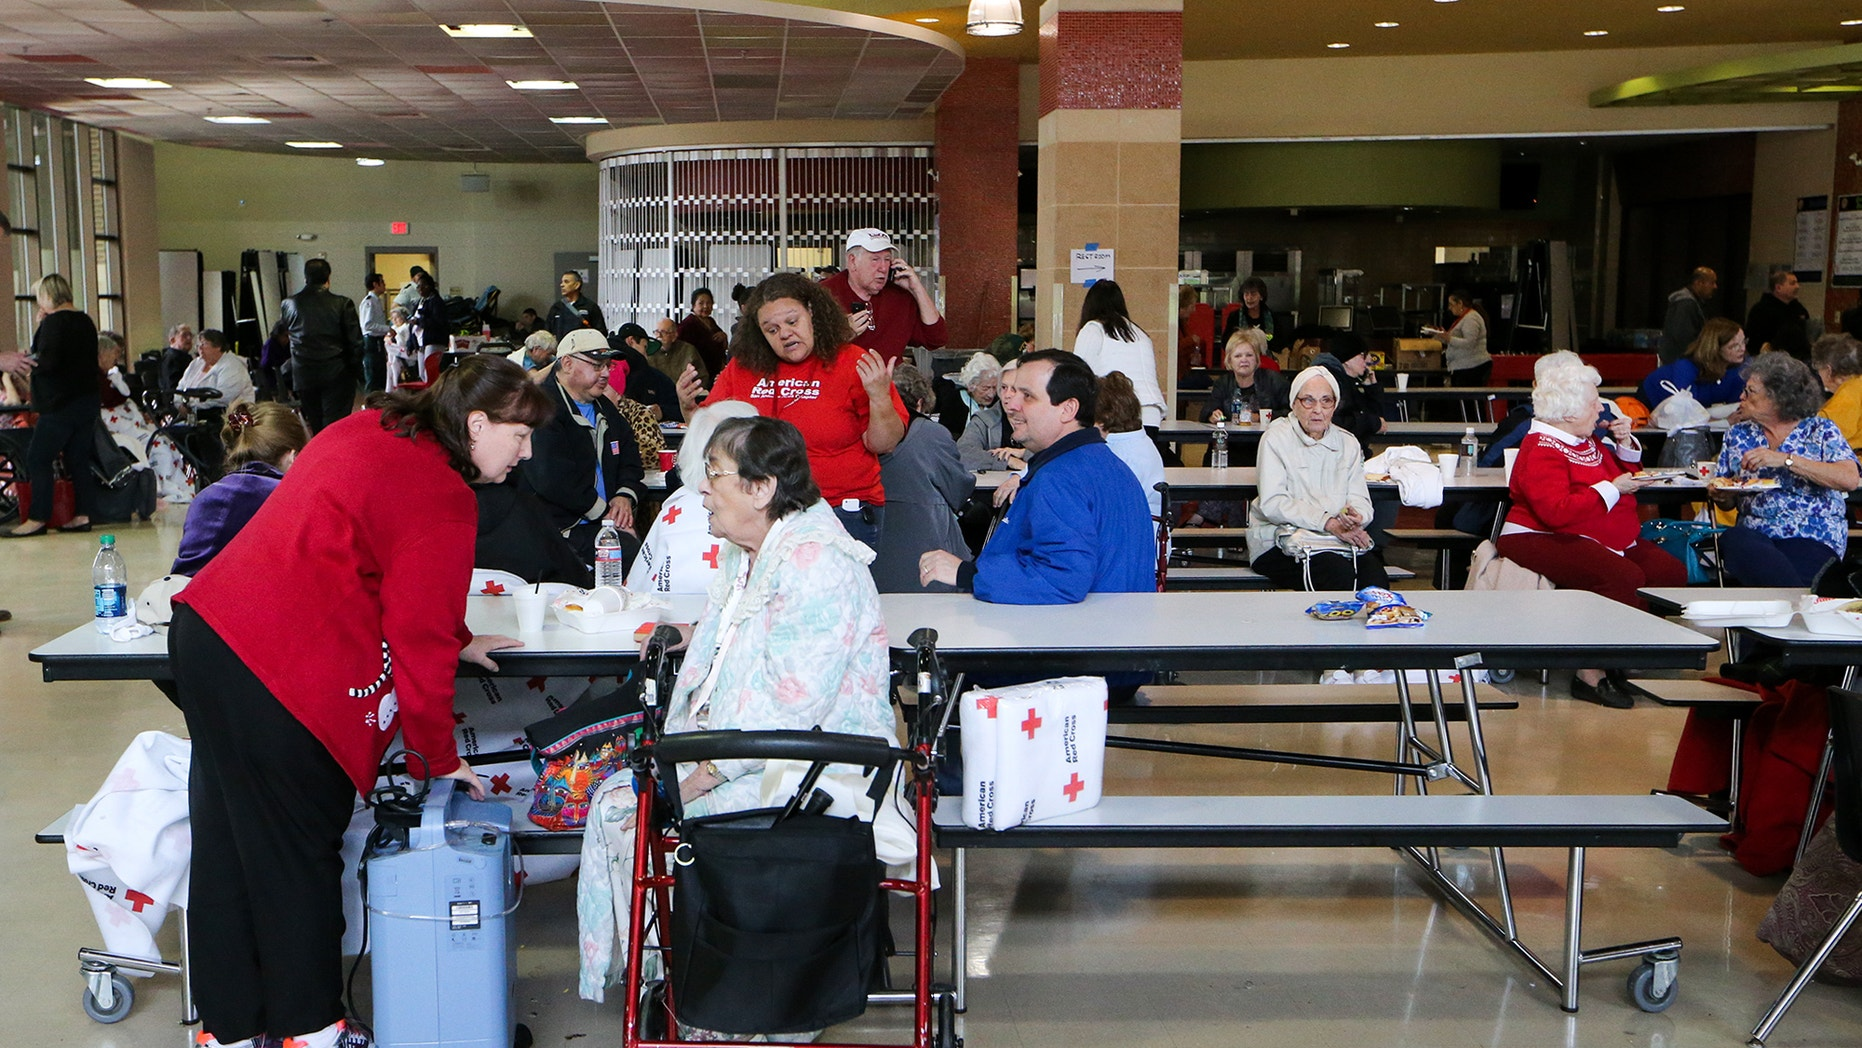 Dec. 28, 2014 - Seniors in a cafeteria at the Churchill School, a  makeshift shelter  after a fire at the senior-living Wedgwood Apartments in Castle Hills, a suburb of San Antonio Texas. 17 remained hospitalized and 5 residents were killed in the blaze.